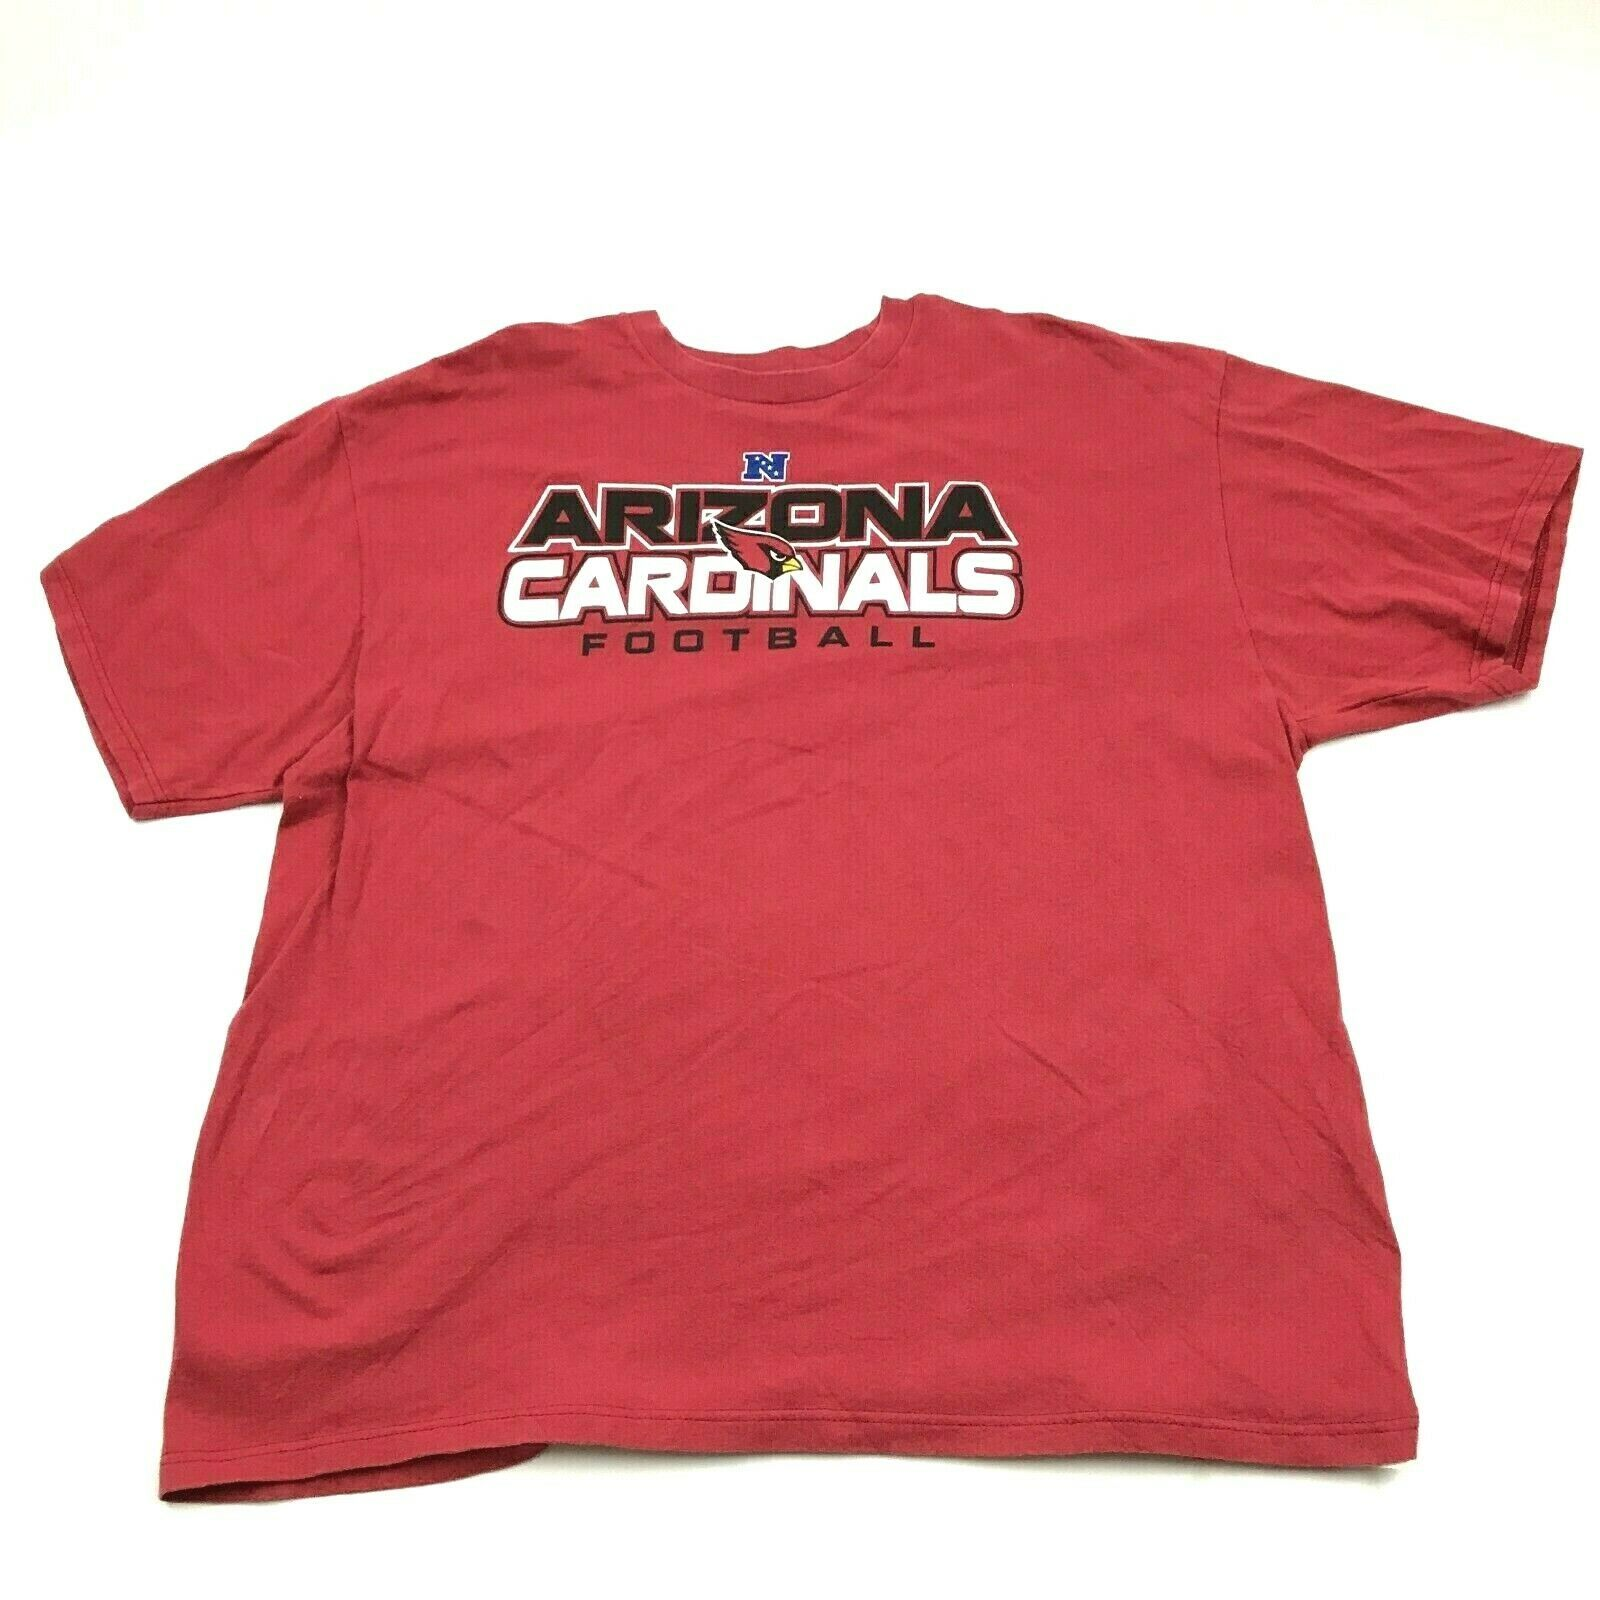 Primary image for NFL Team Apparel Arizona Cardinals Football Shirt Size 2XL XXL Red Tee Loose